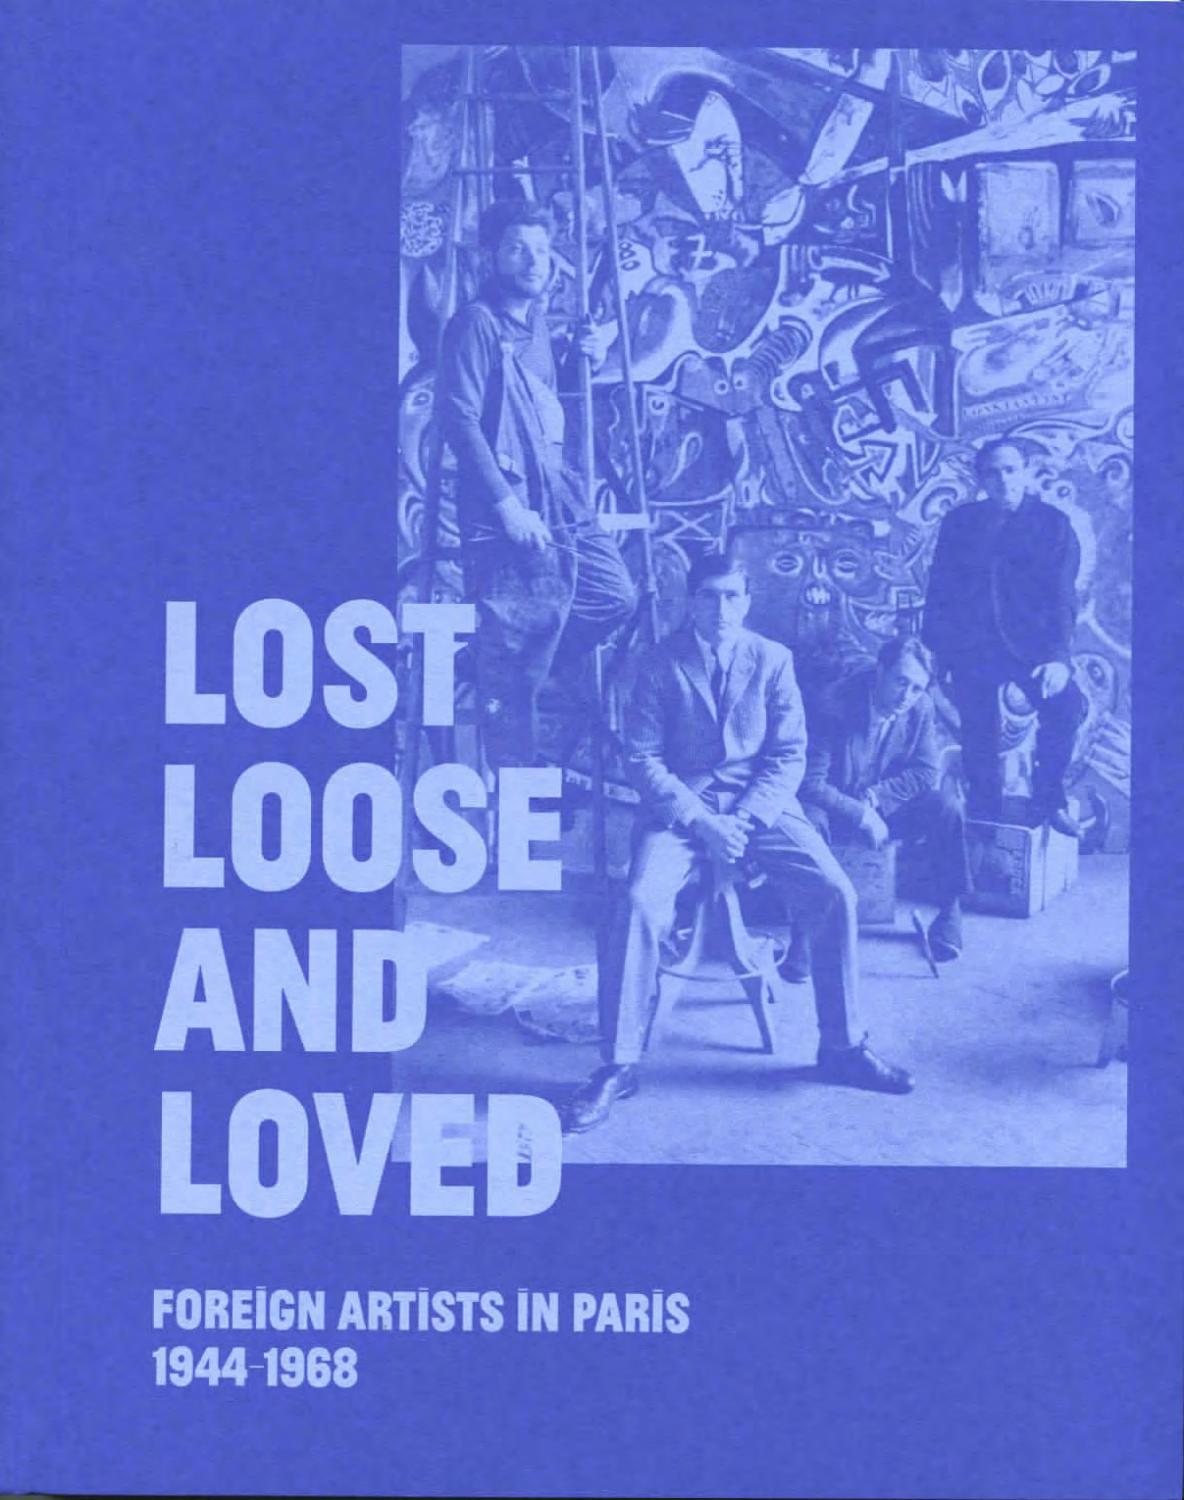 Peinture Murale Bleu Klein lost, loose and loved: foreign artists in paris 1944-1968